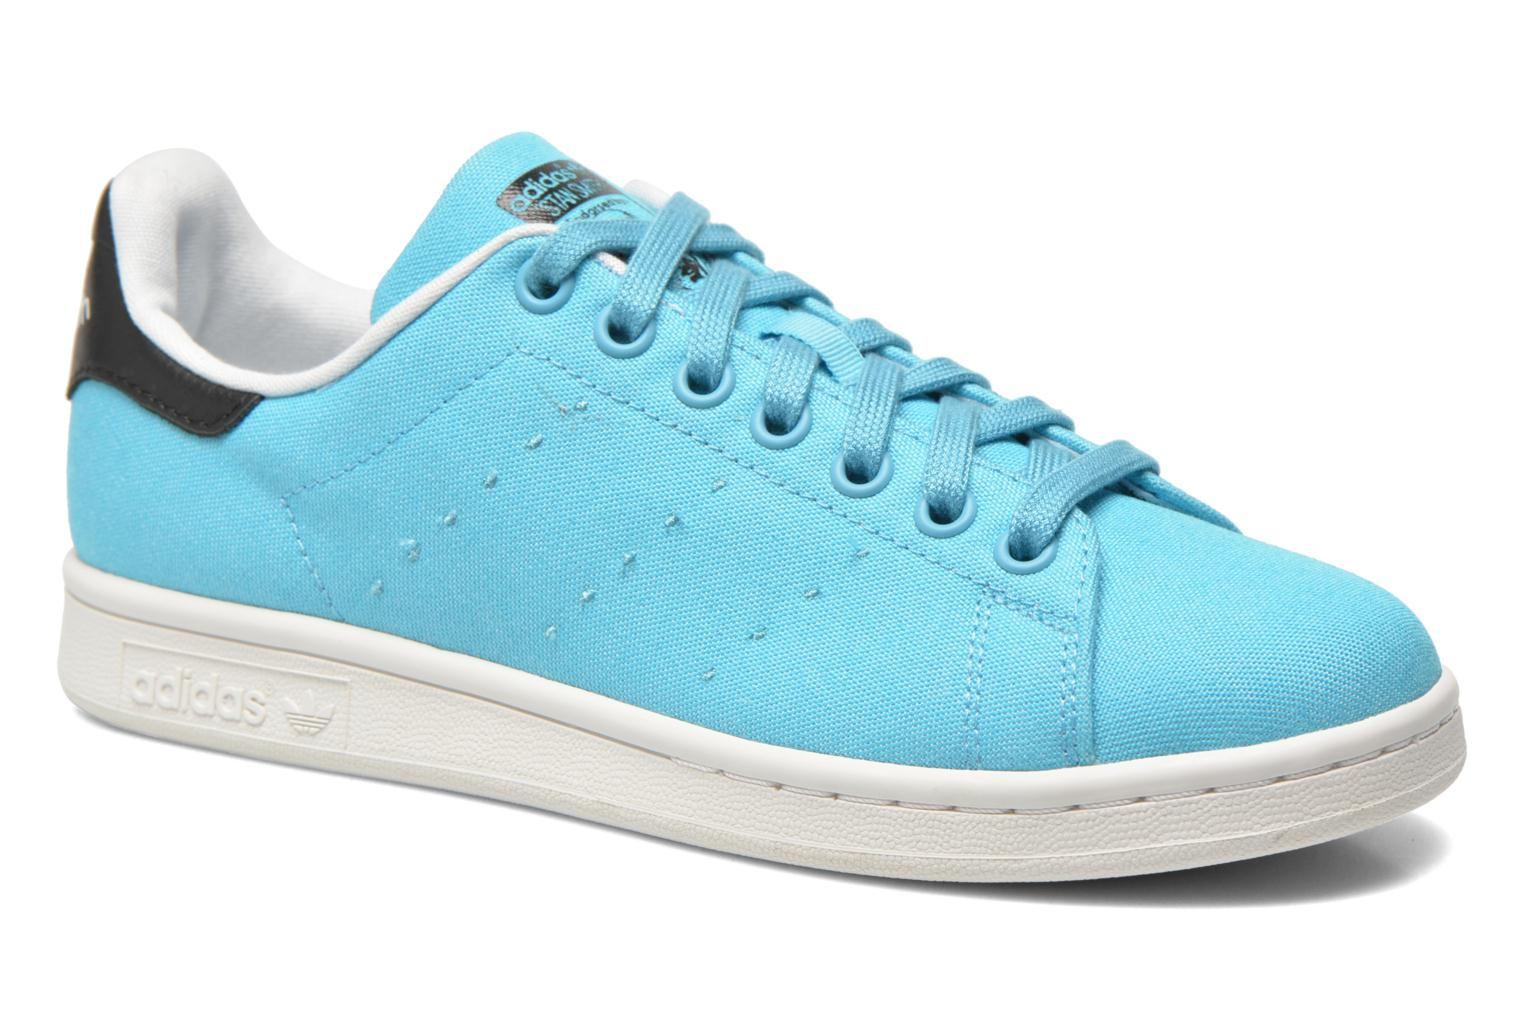 Stan Smith W Ciebla/Ciebla/Blavin